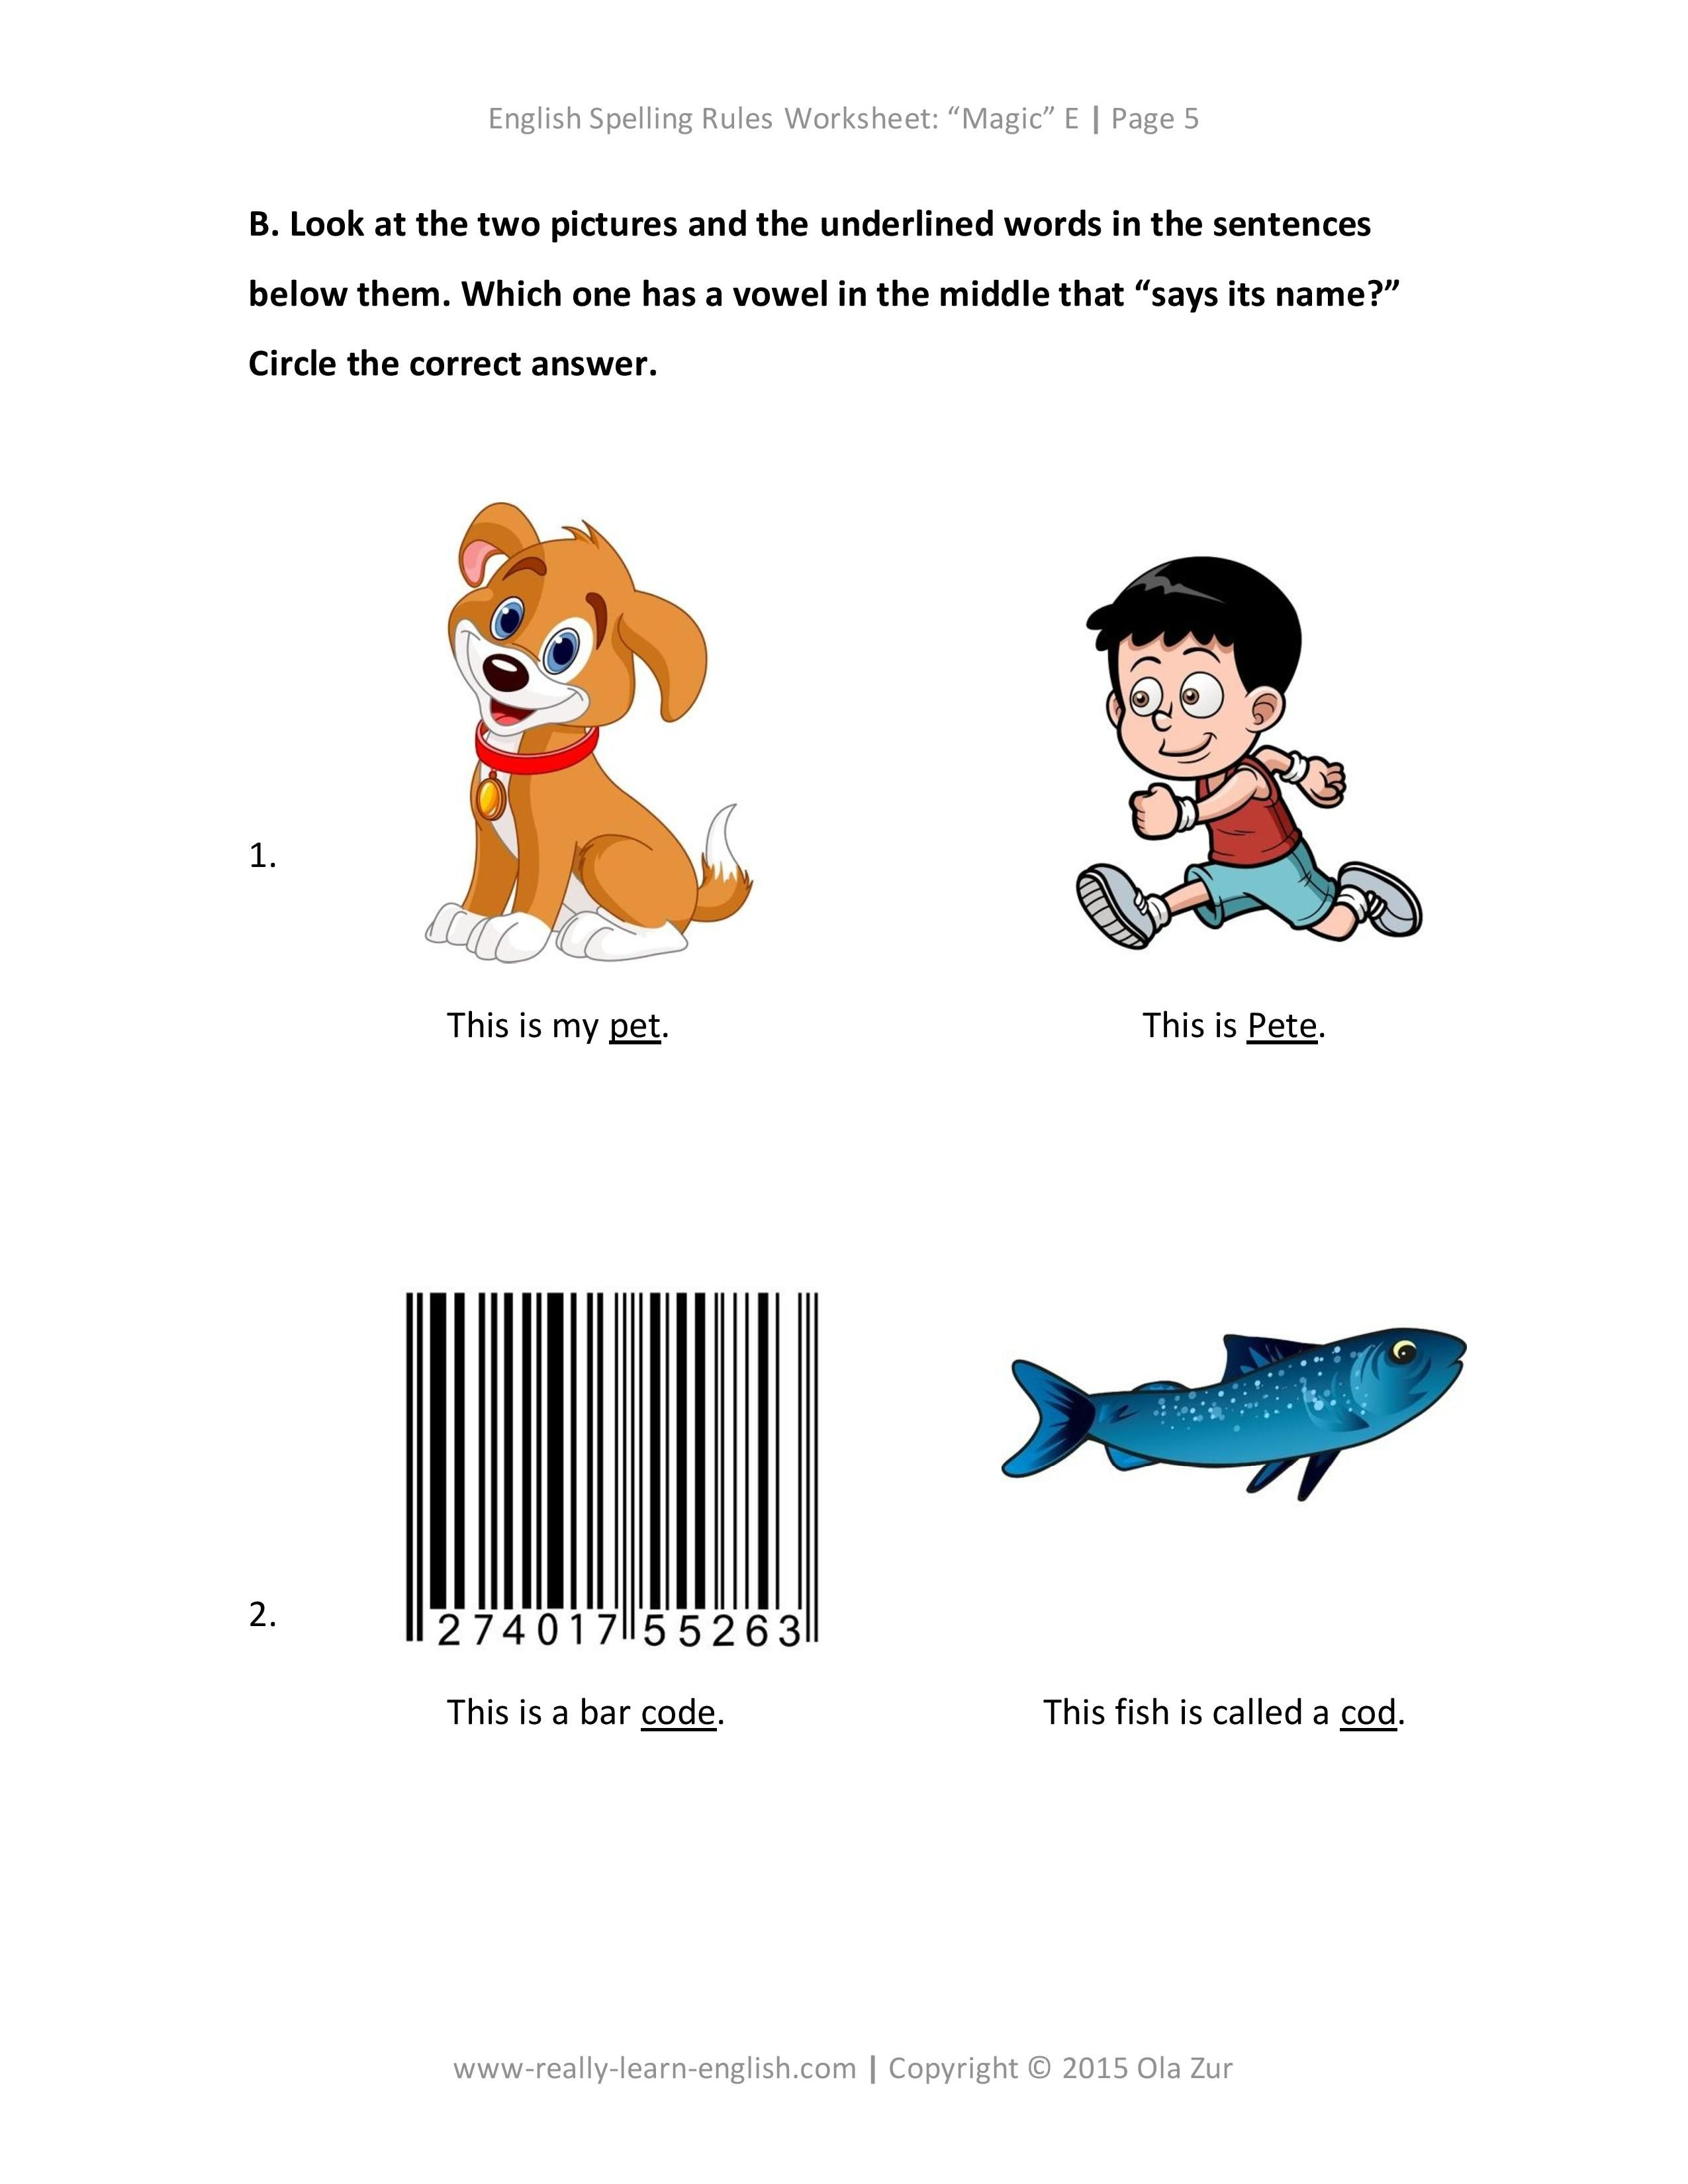 The Complete List Of English Spelling Rules Lesson 1 The Magic E Rules Examples Worksheet